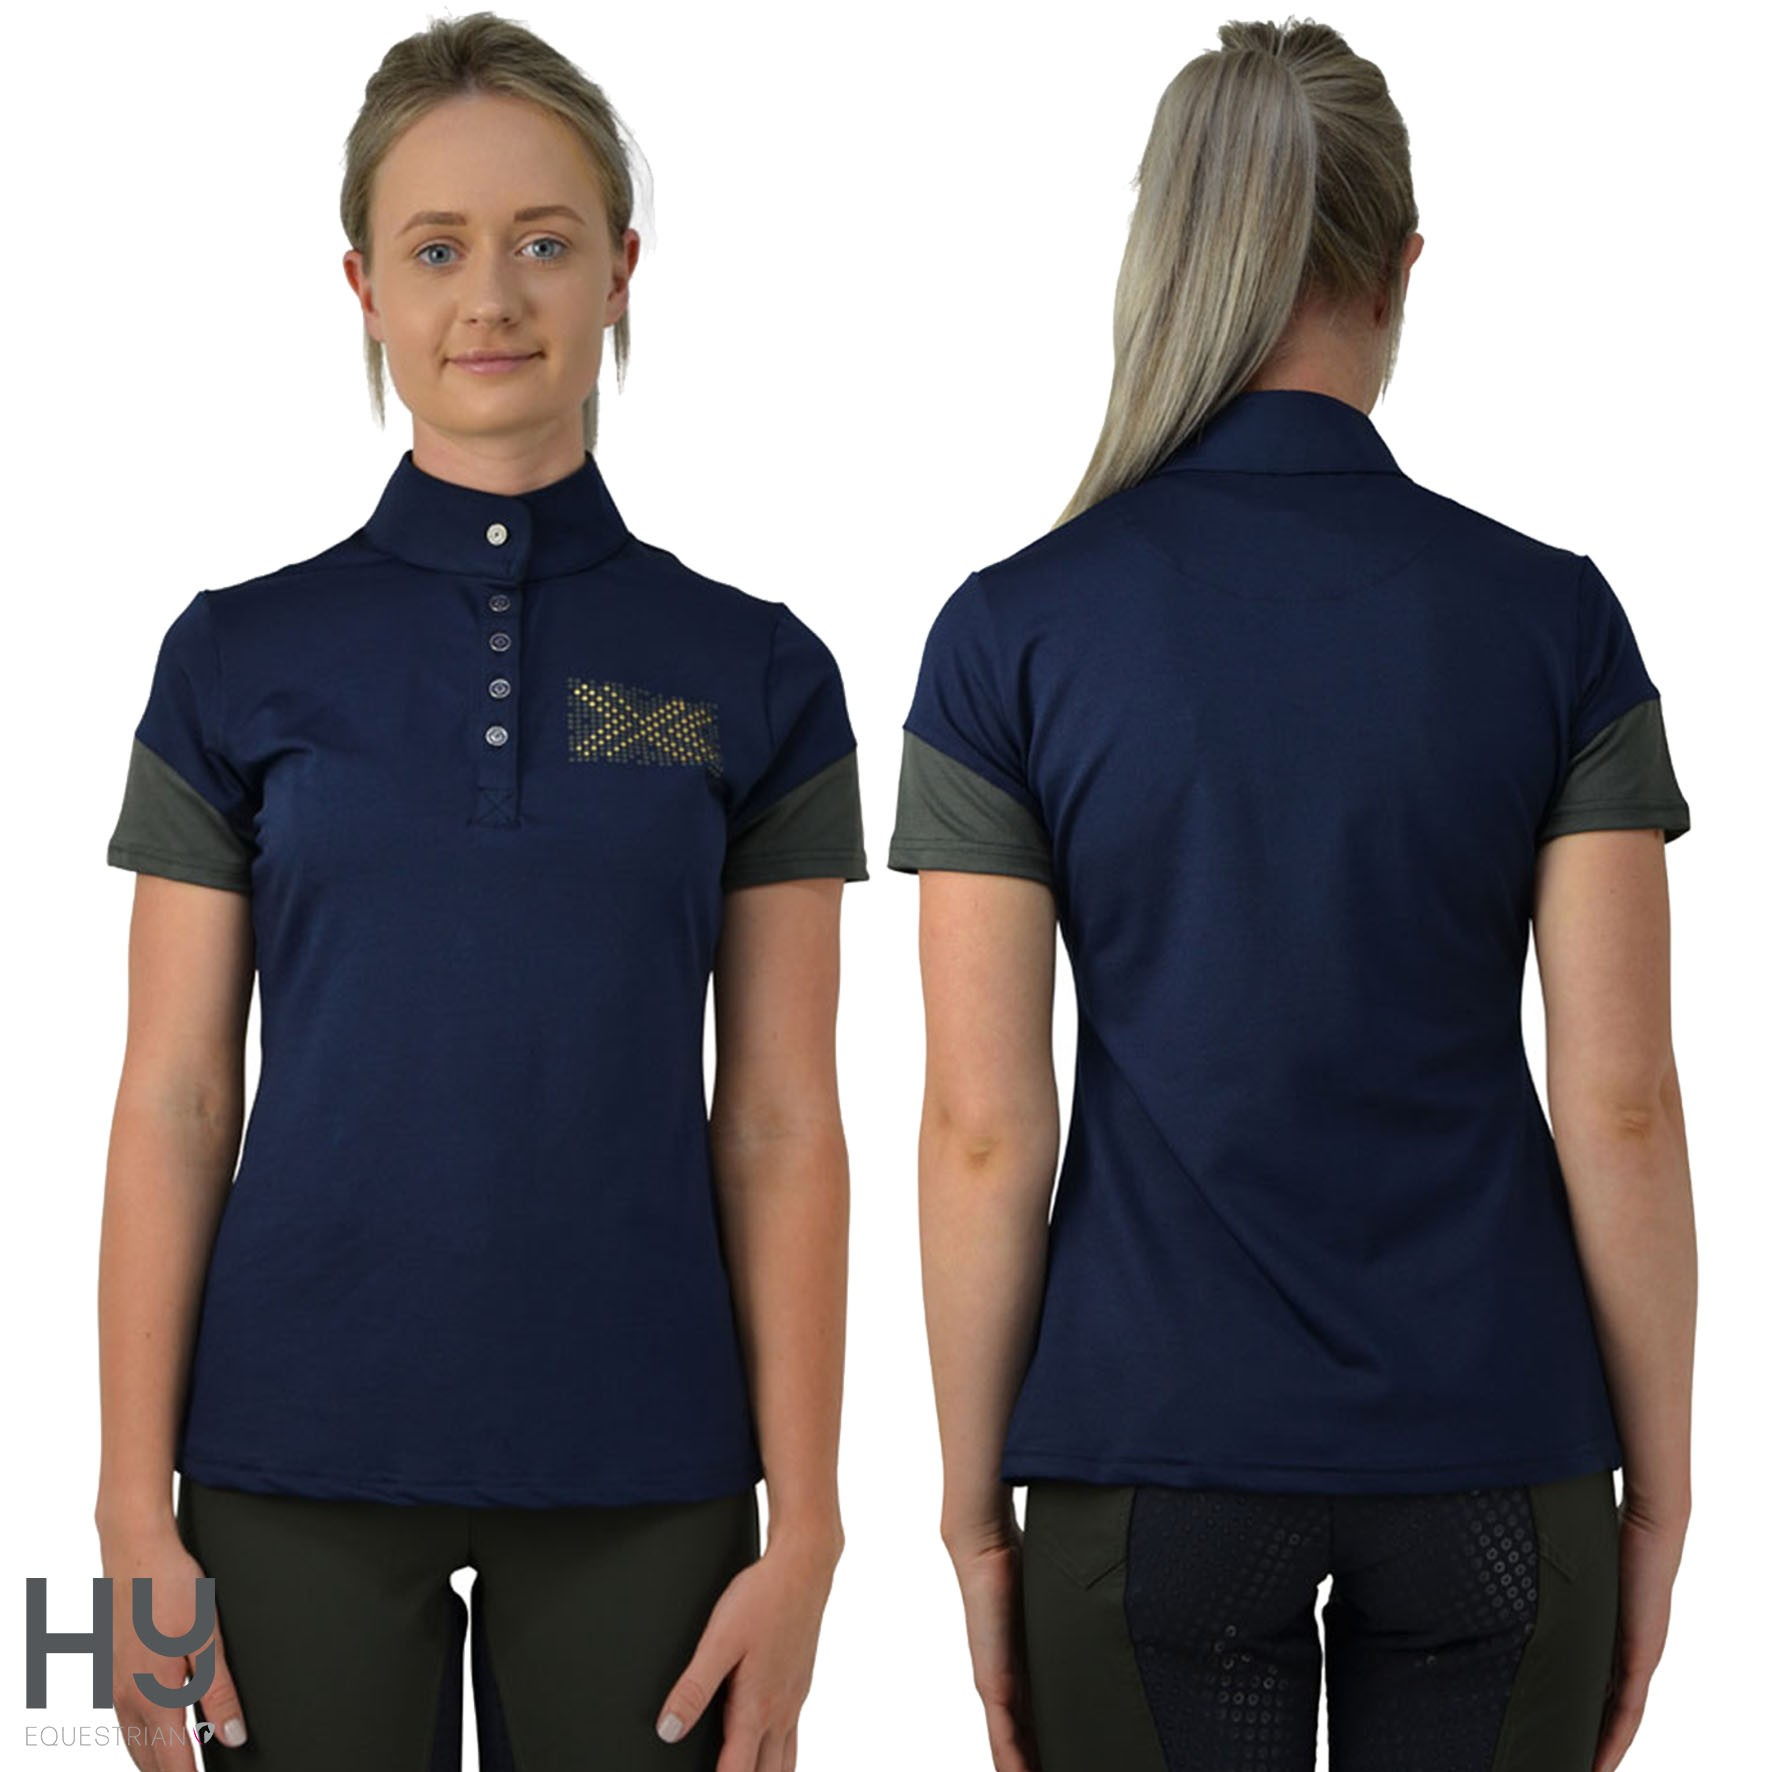 HyFASHION Edinburgh Ladies Sports Shirt